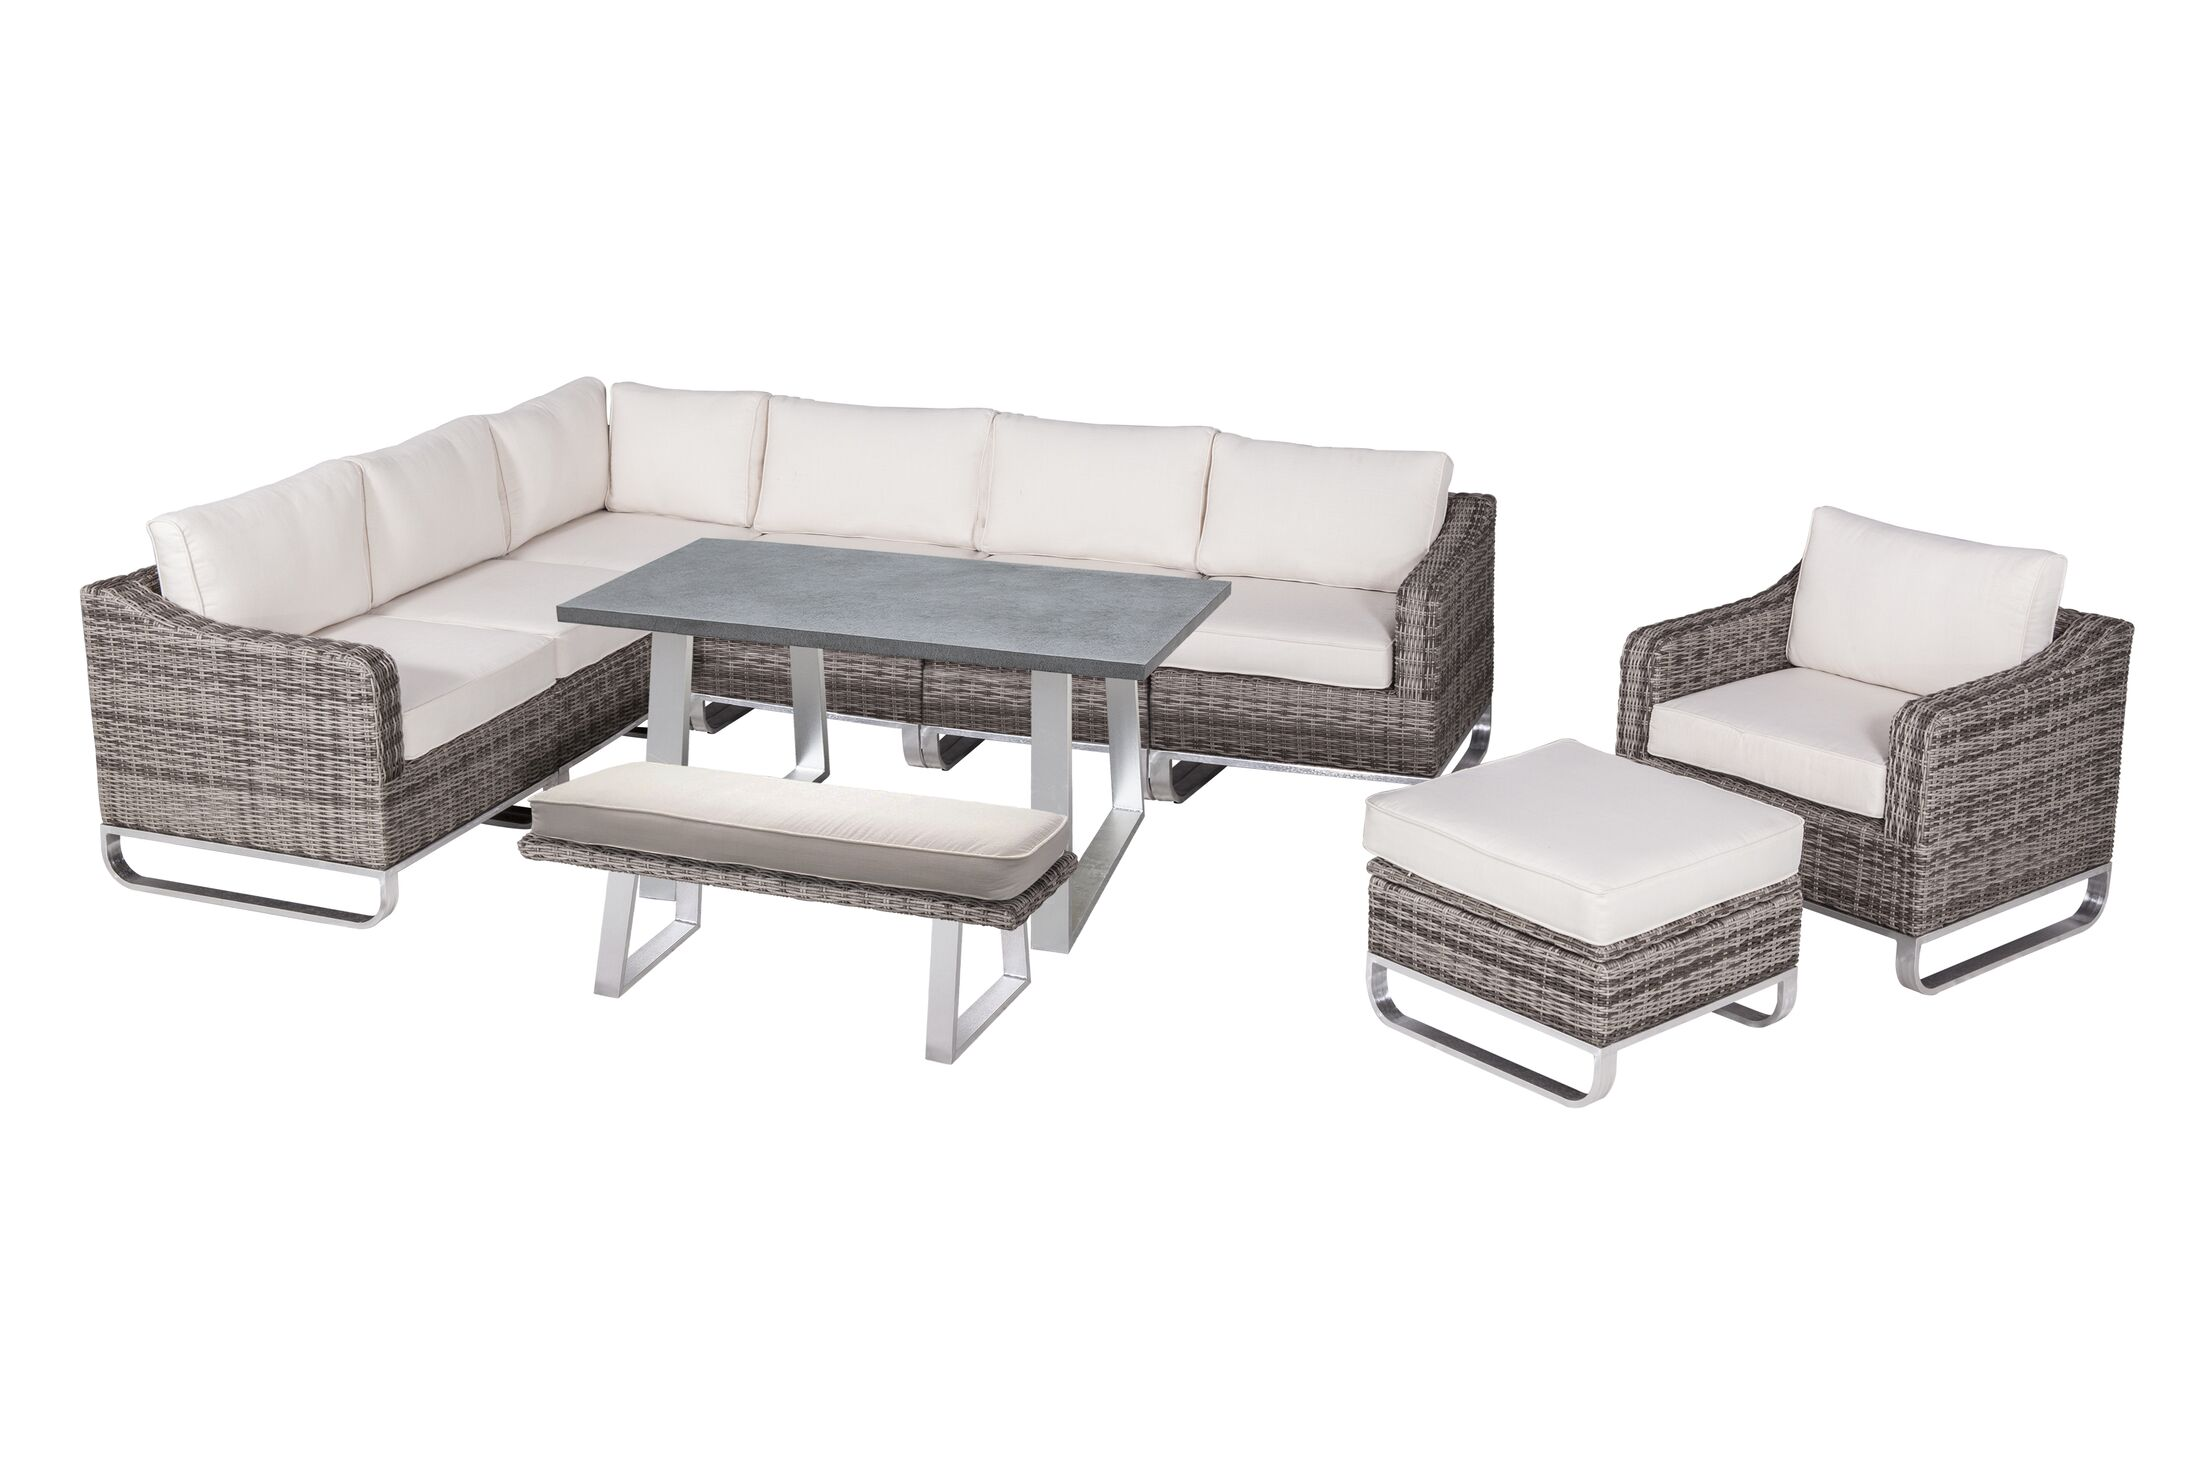 Hollaway 10 Piece Sectional Set with Cushions